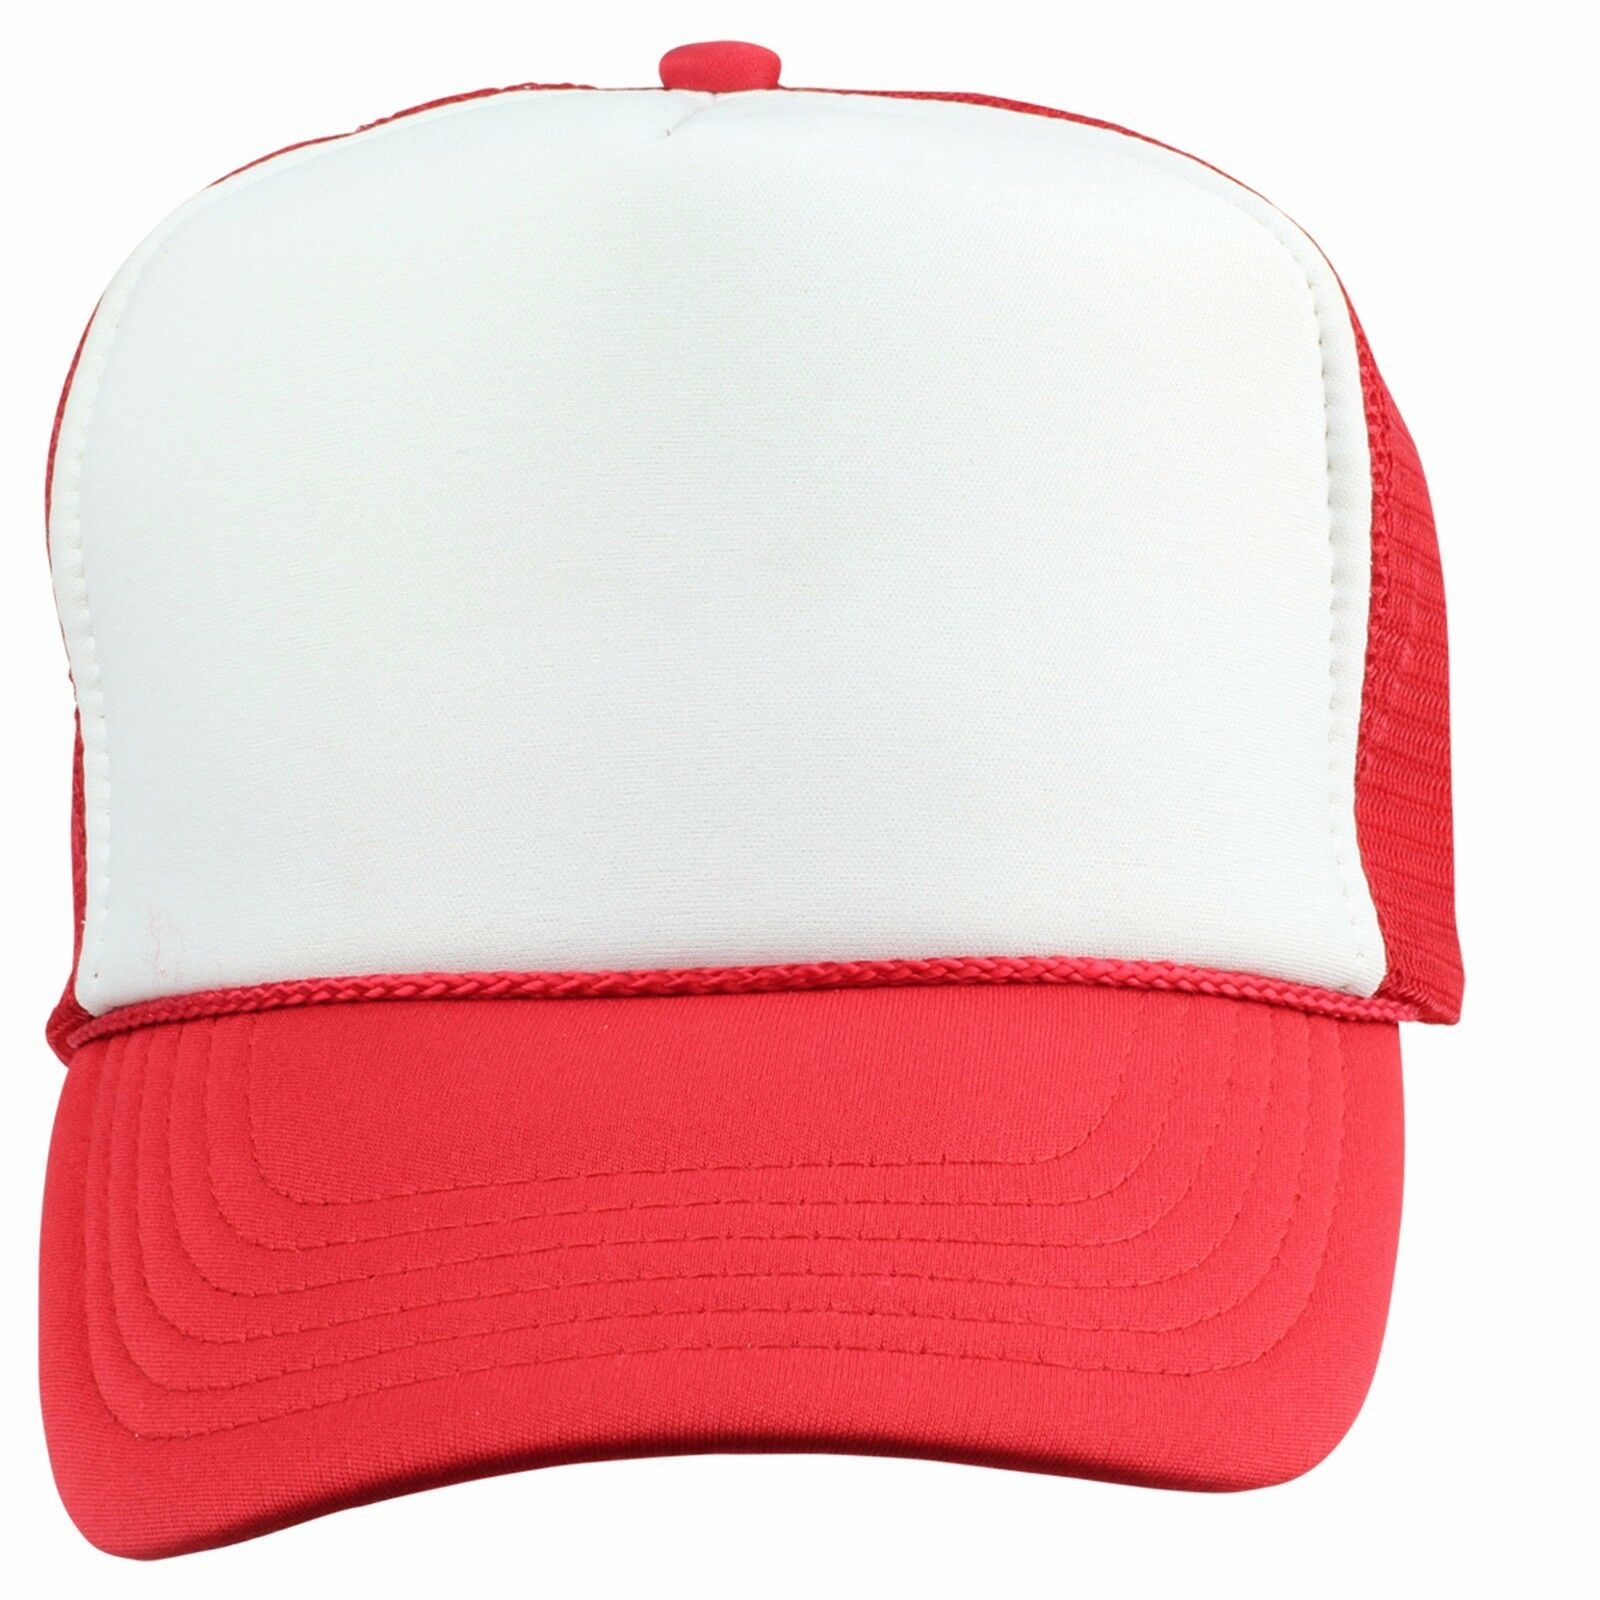 Buy DALIX Handy Manny Costume Hat Red White Cartoon Kids Youth ... 0cc4ffd1bcc